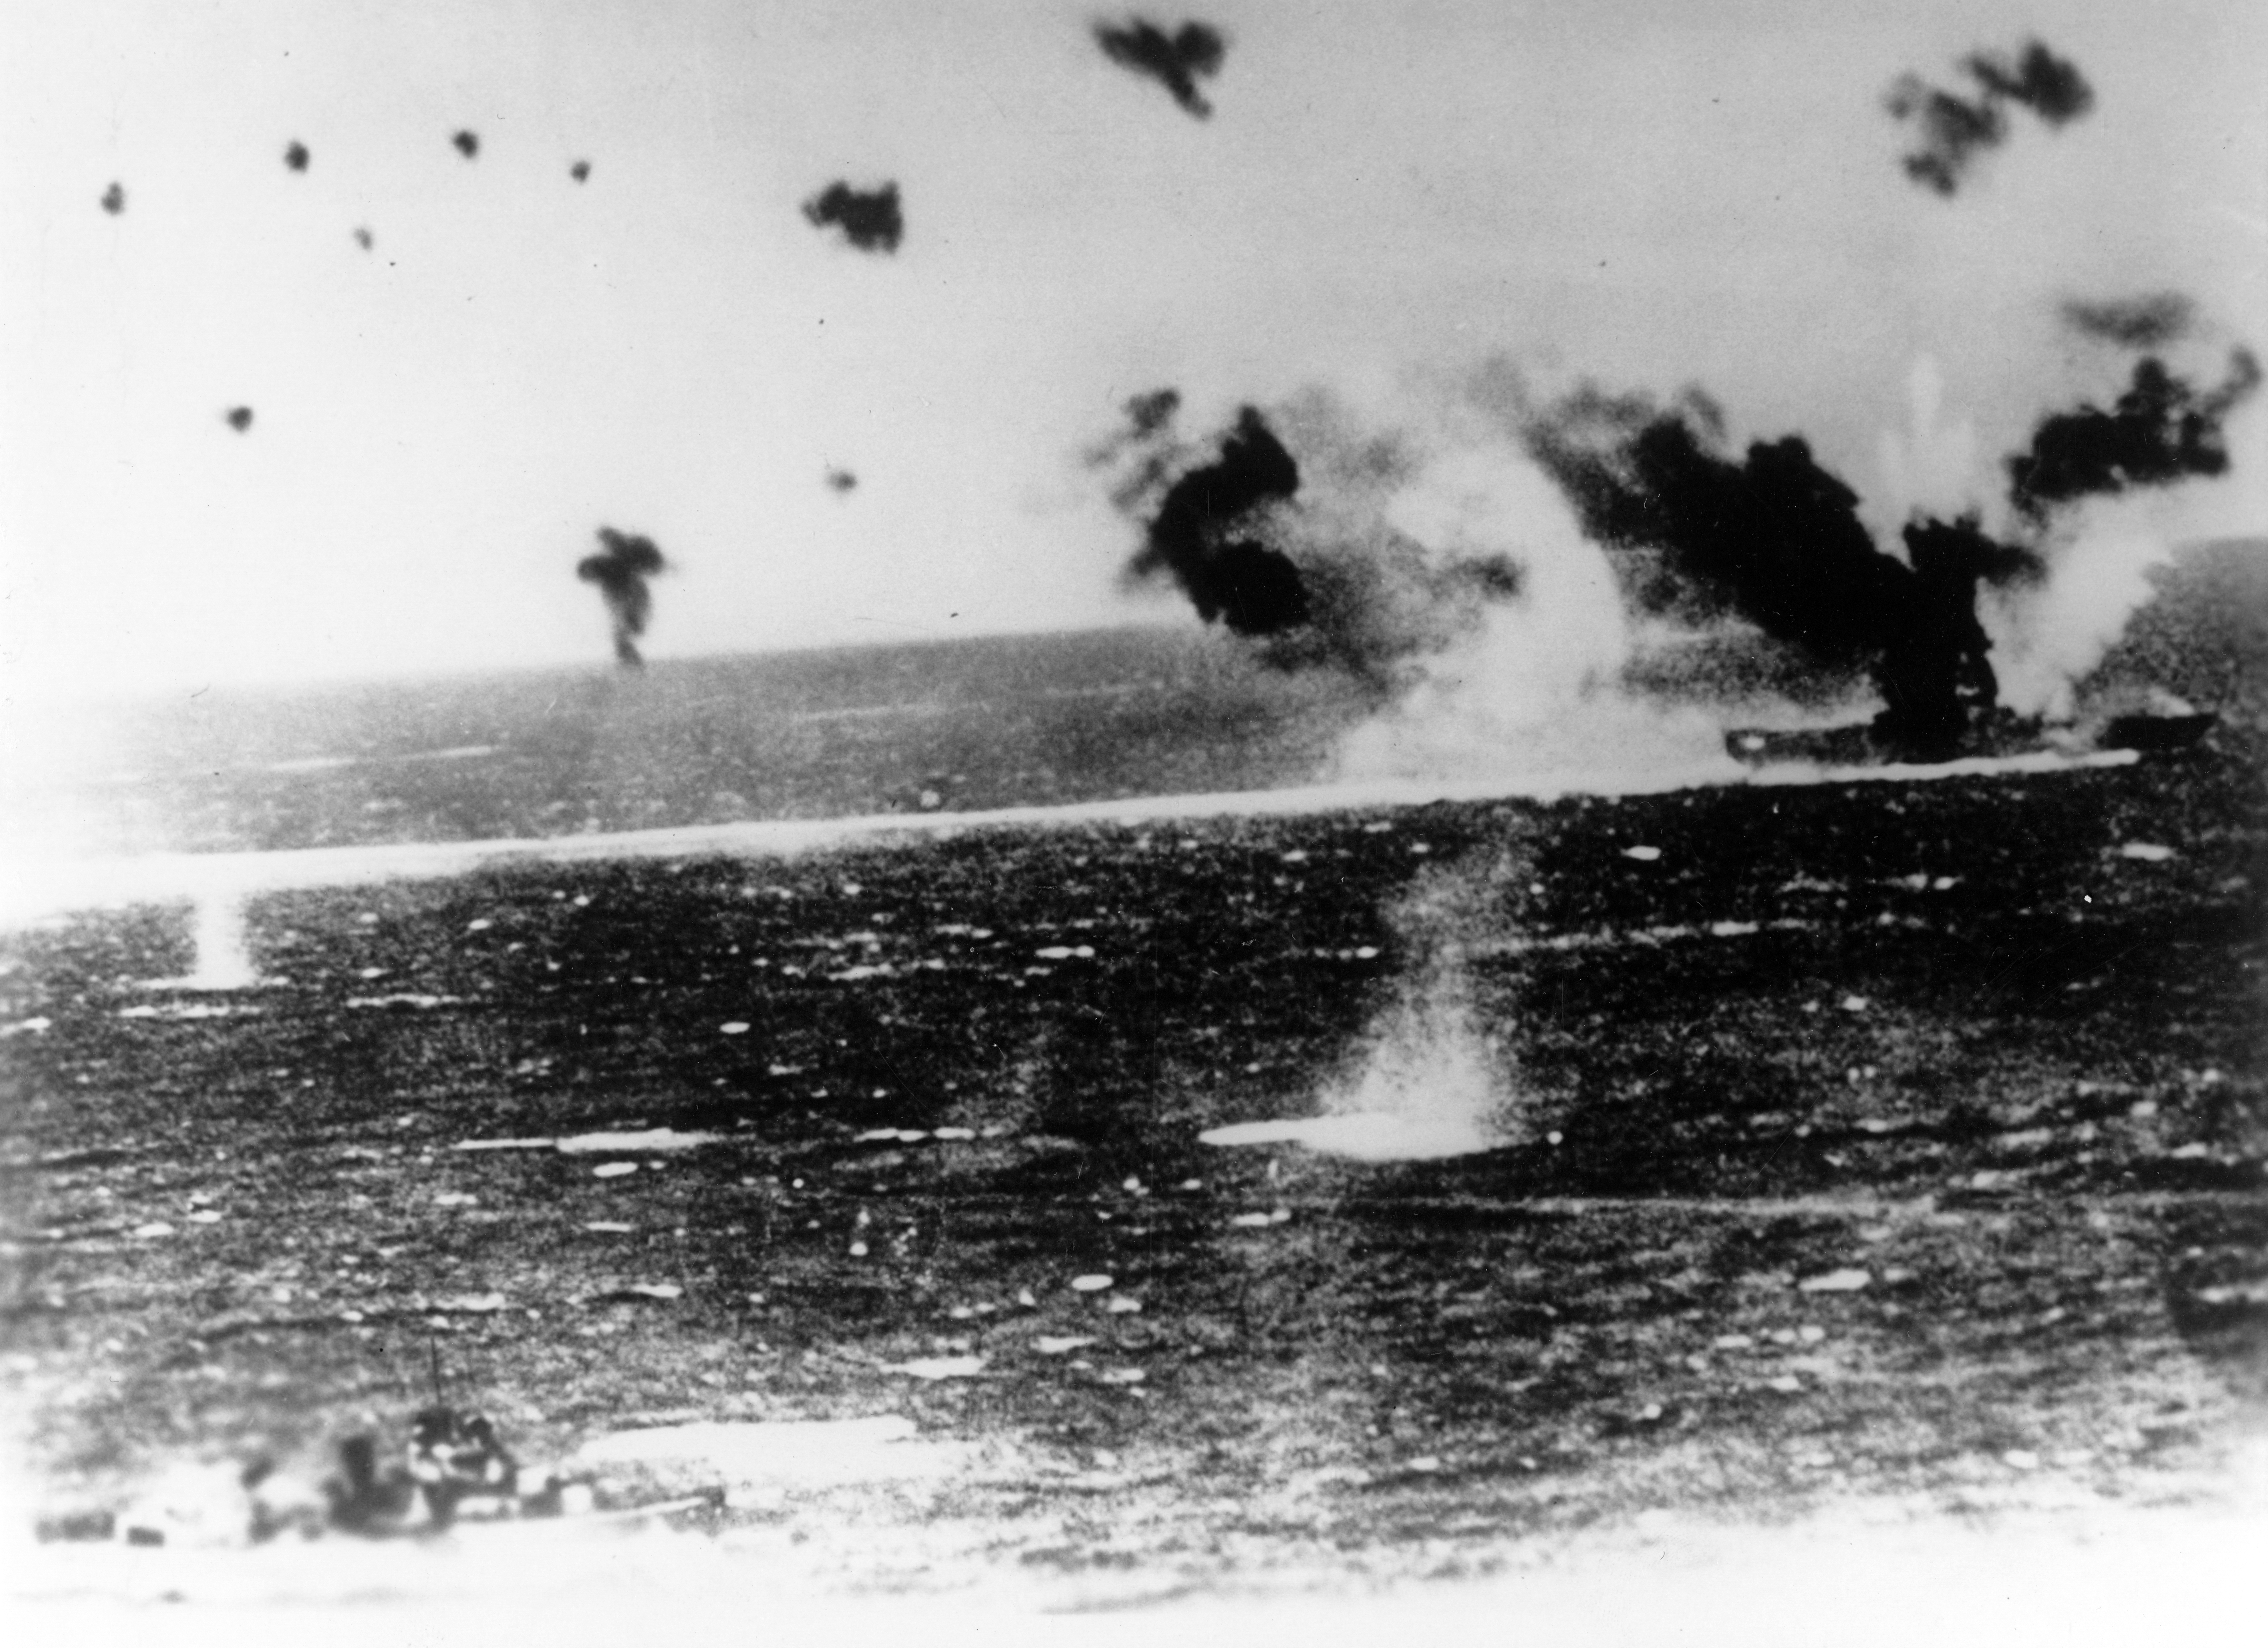 USS_Lexington_%28CV-2%29_under_air_attack_during_the_Battle_of_the_Coral_Sea%2C_8_May_1942_%28NH_95579%29.jpg